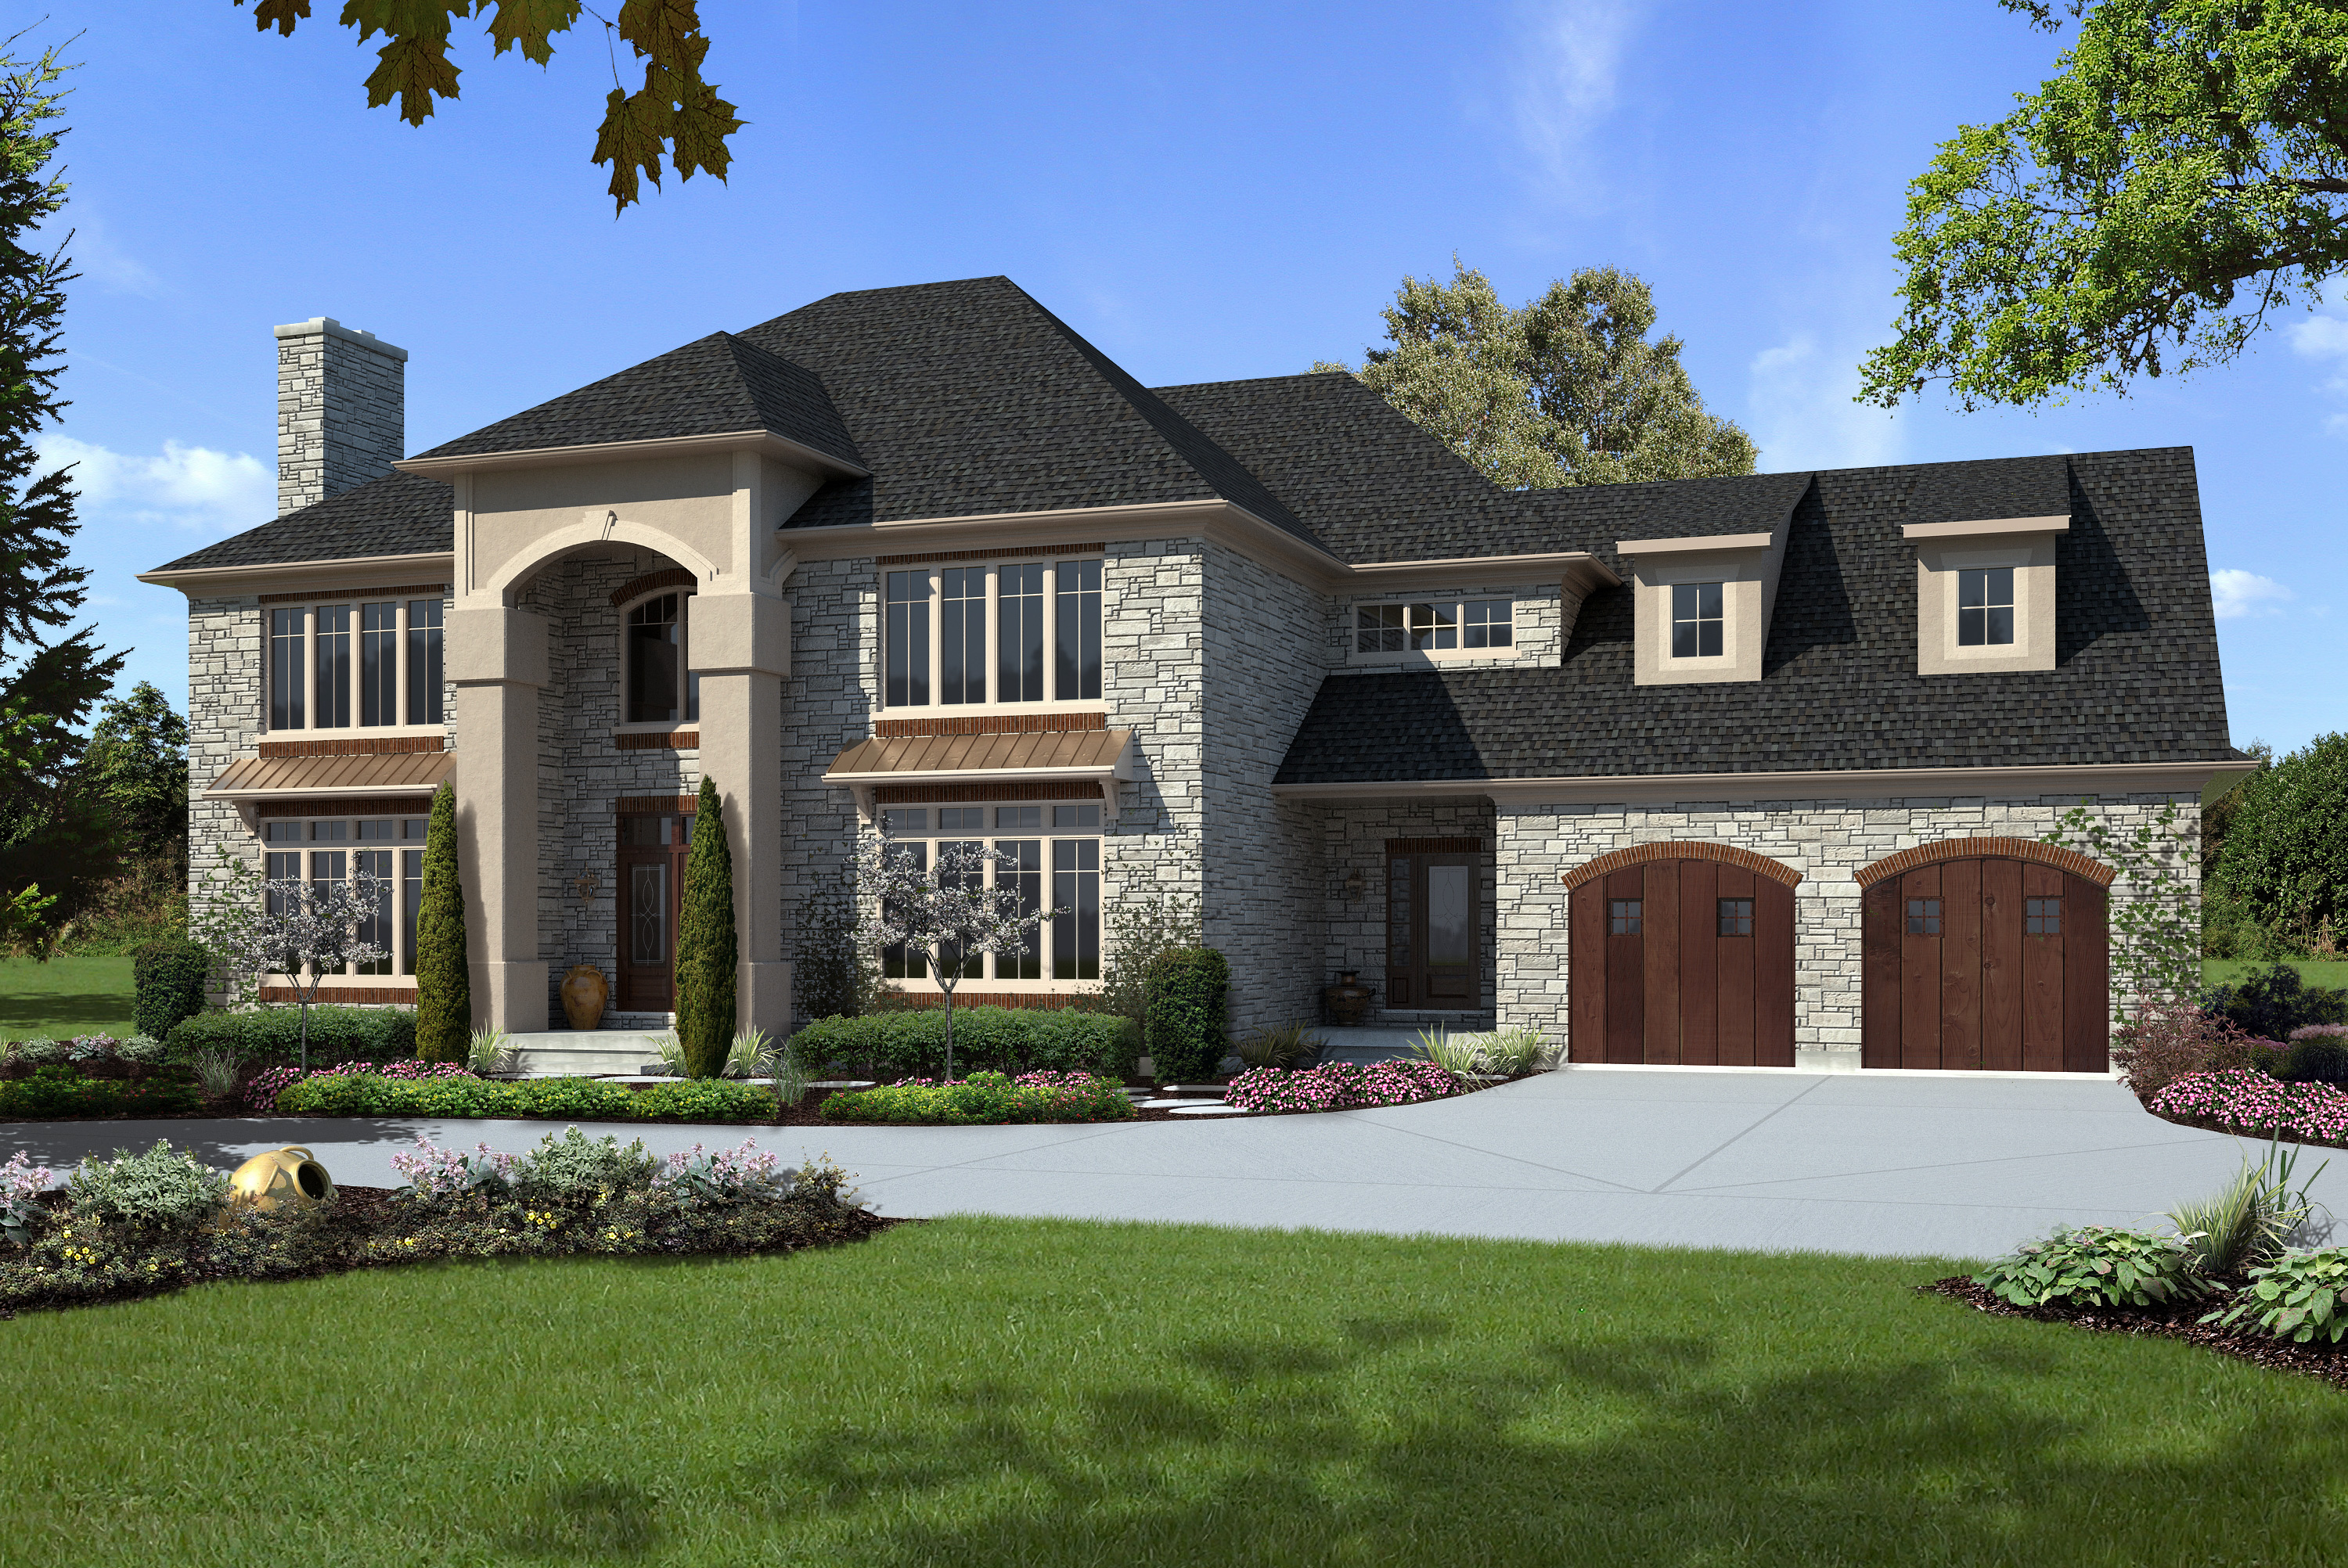 Custom home designs custom house plans custom home plans Custom home design